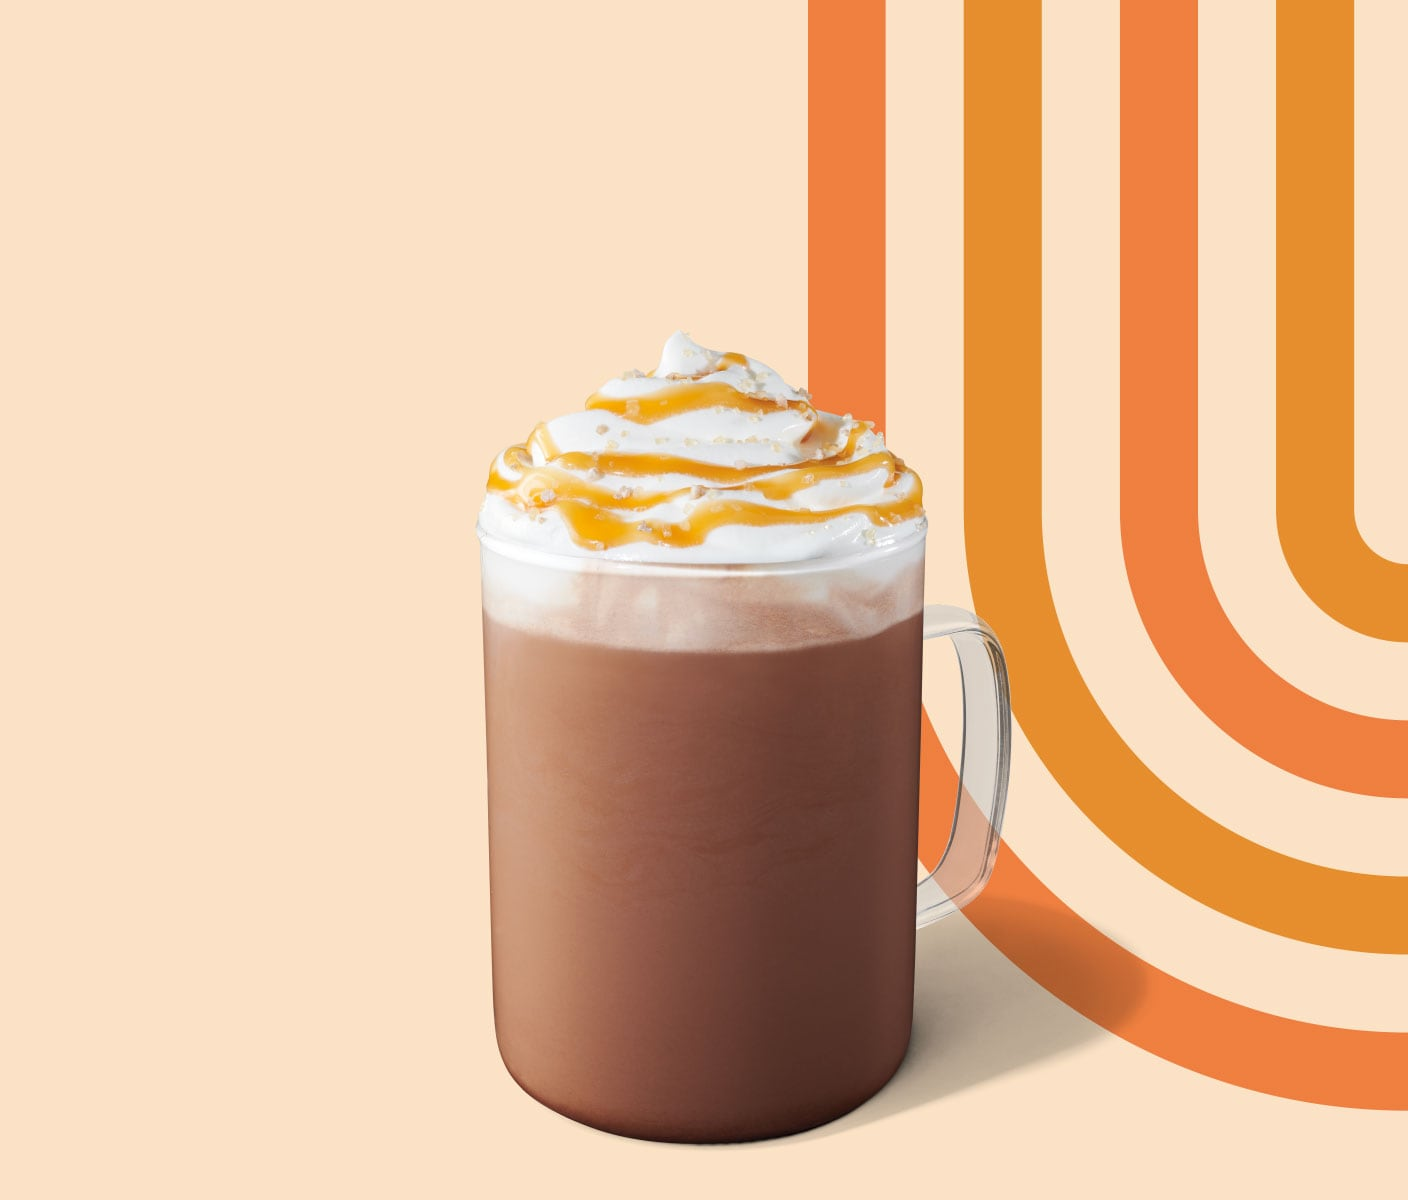 Mocha topped with whipped cream and served in a glass mug.